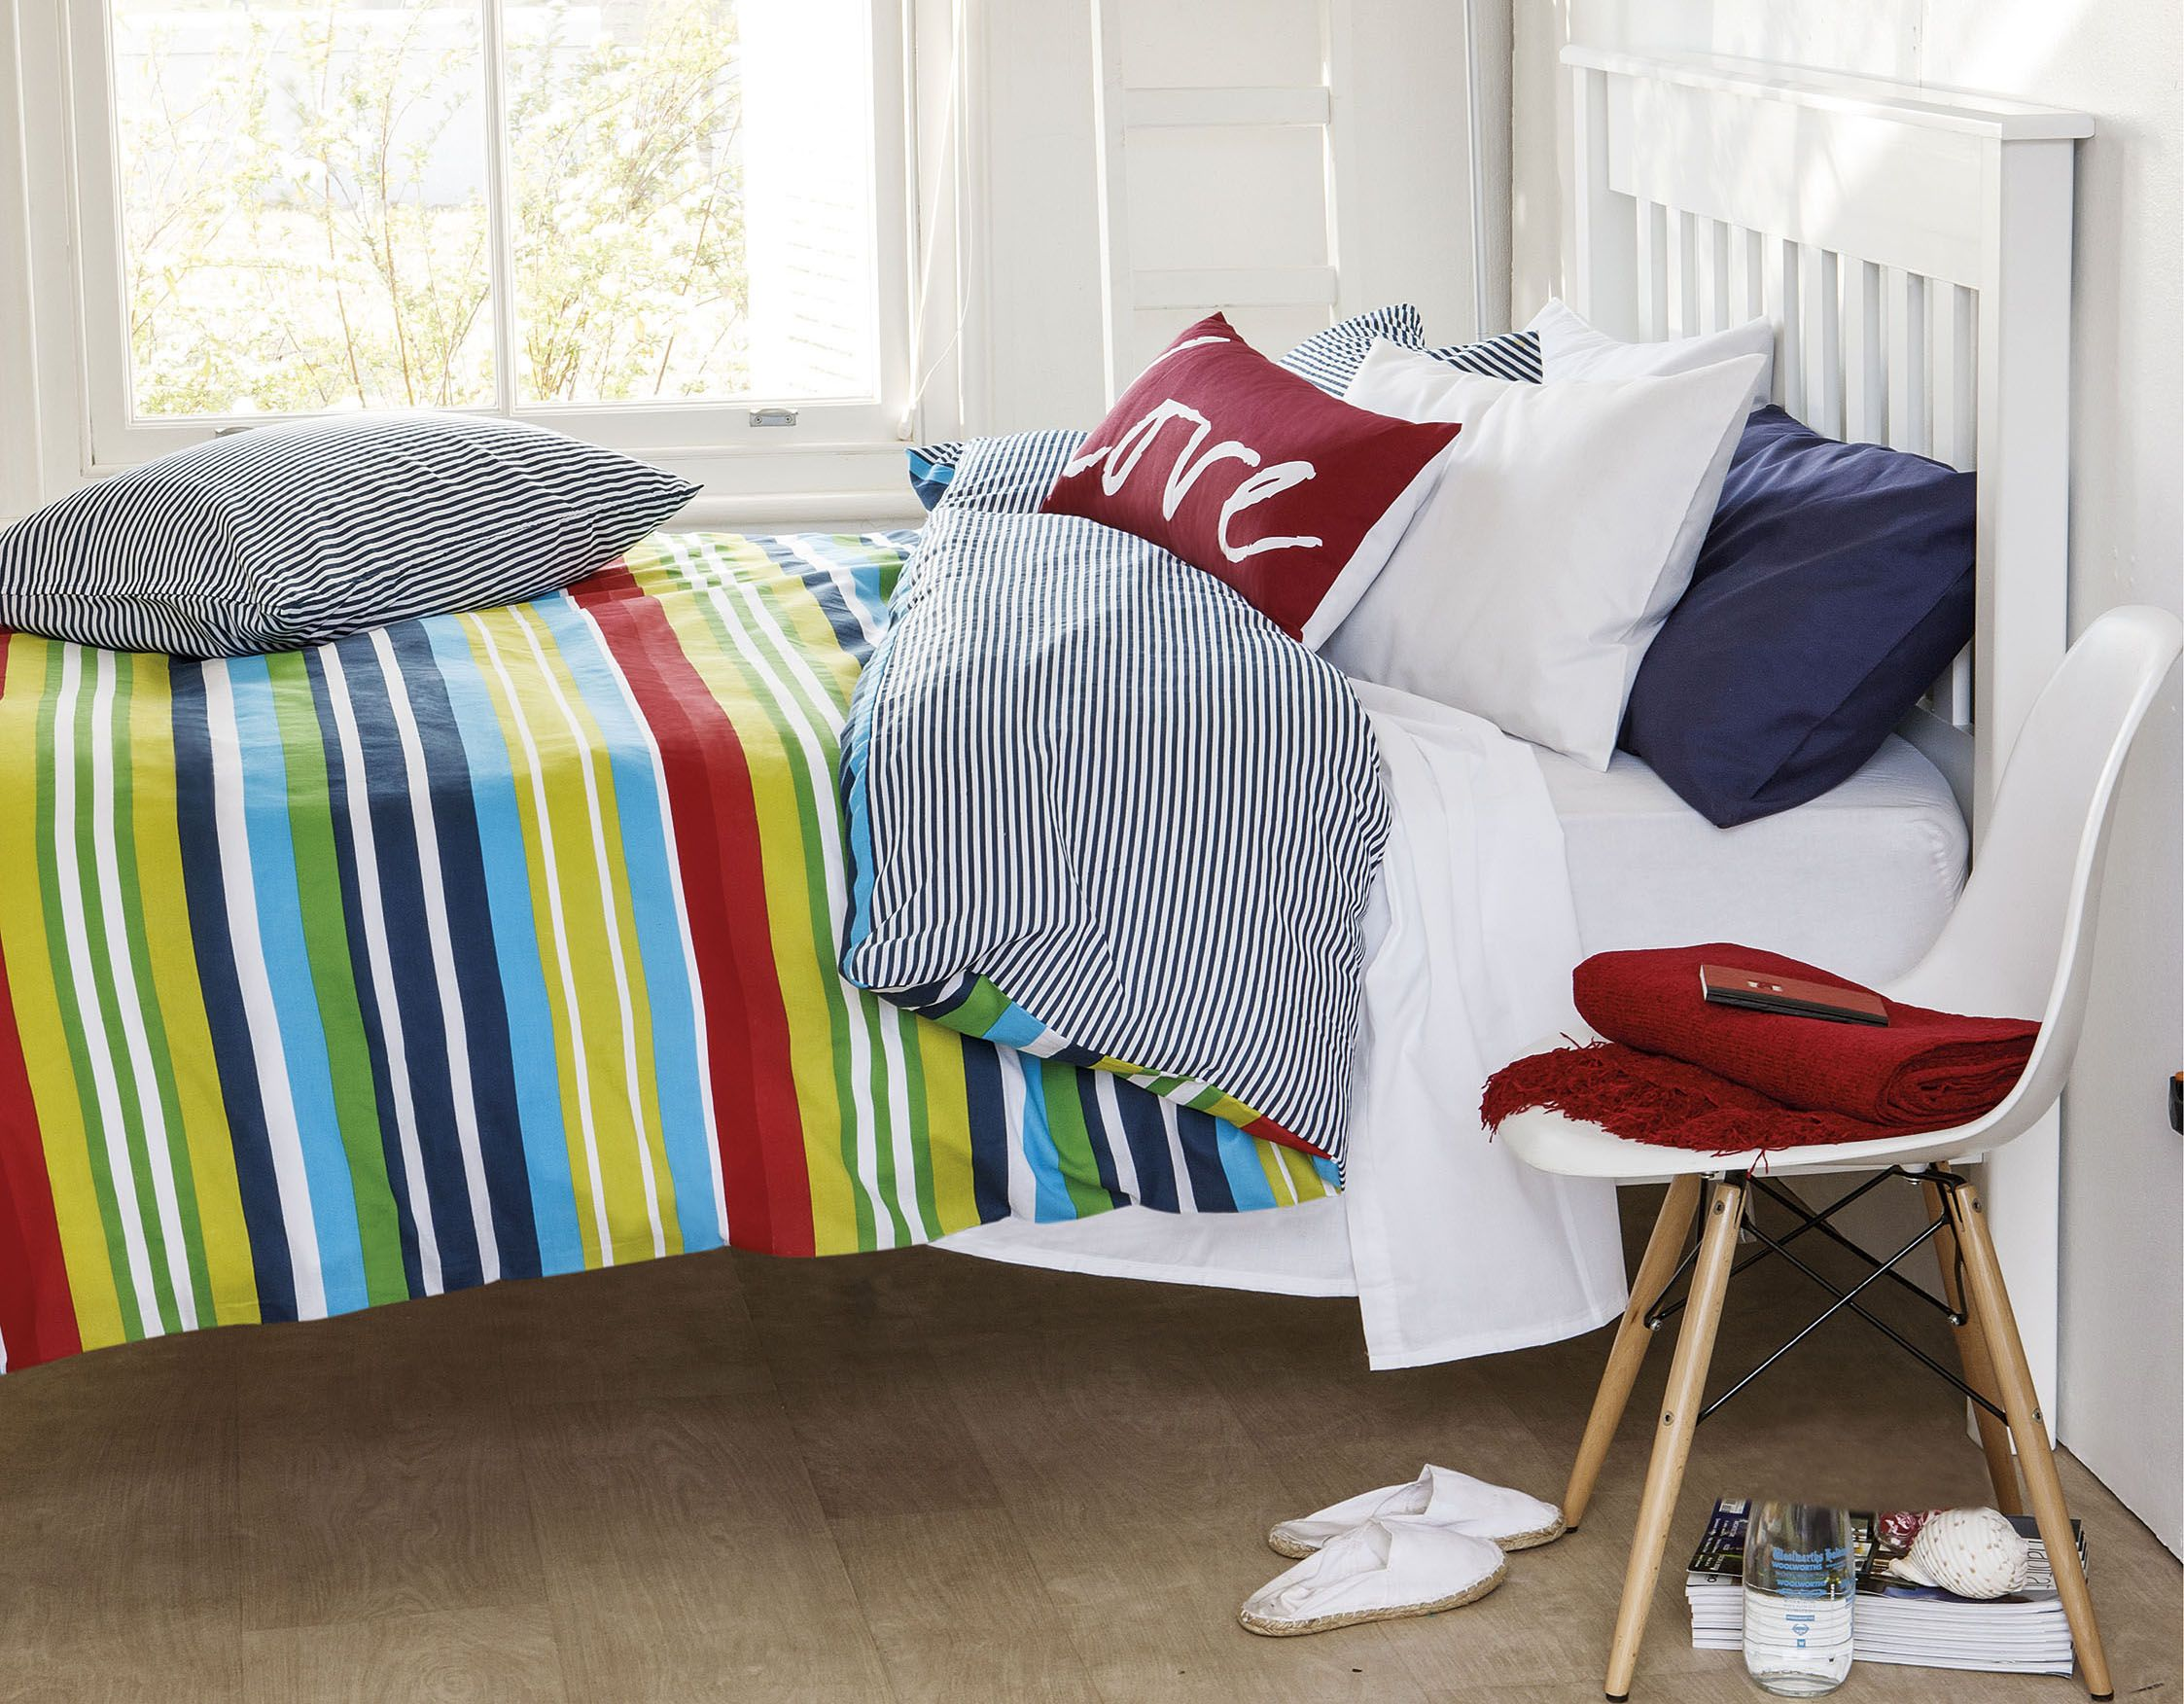 Mr Price Home bedroom product  To view our latest range  visit  www mrpricehome. 28 best MR PRICE BEDROOM images on Pinterest